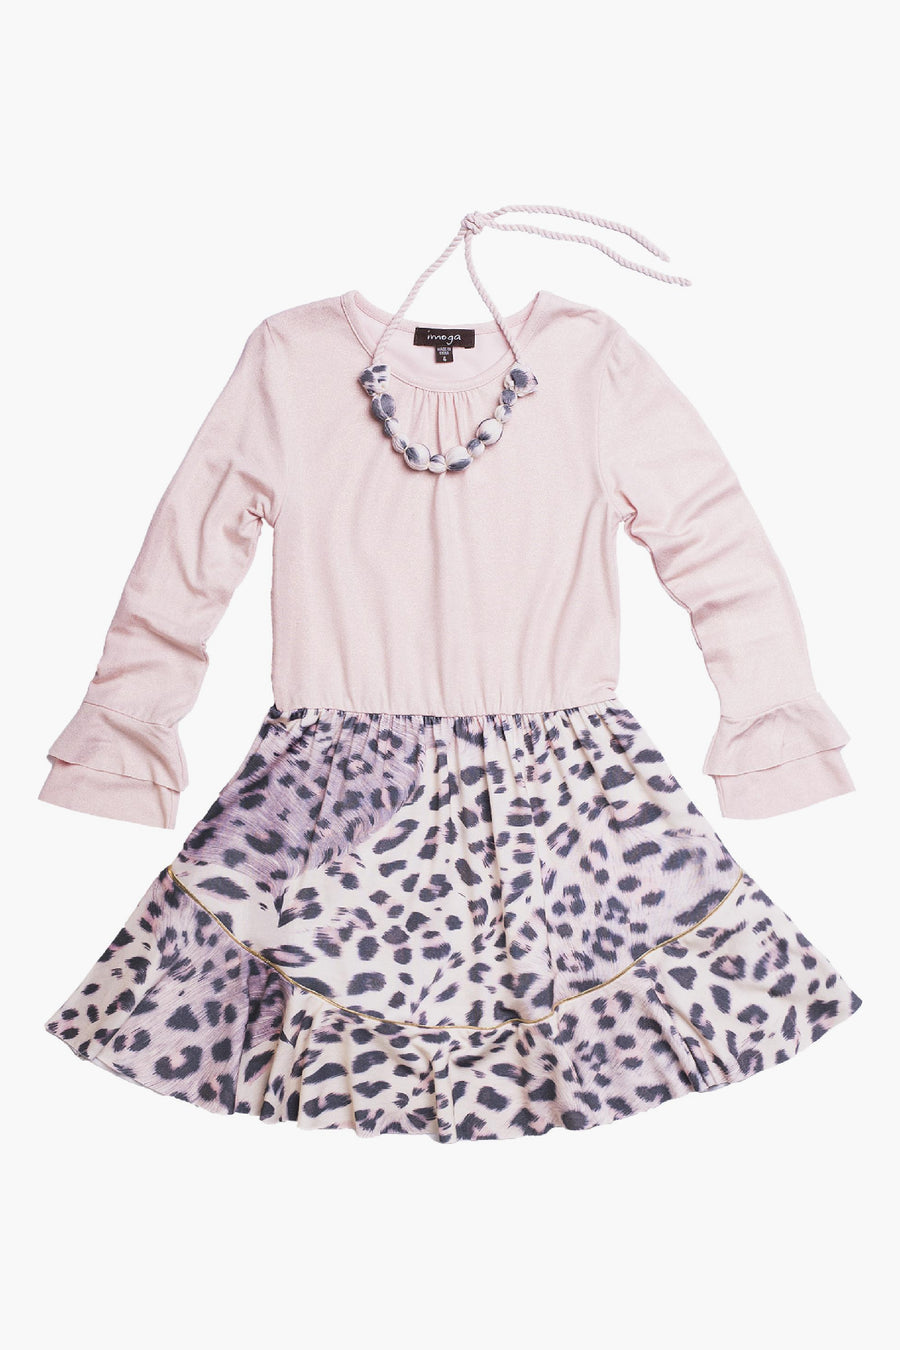 Imoga Peggy Girls Dress- Lynx